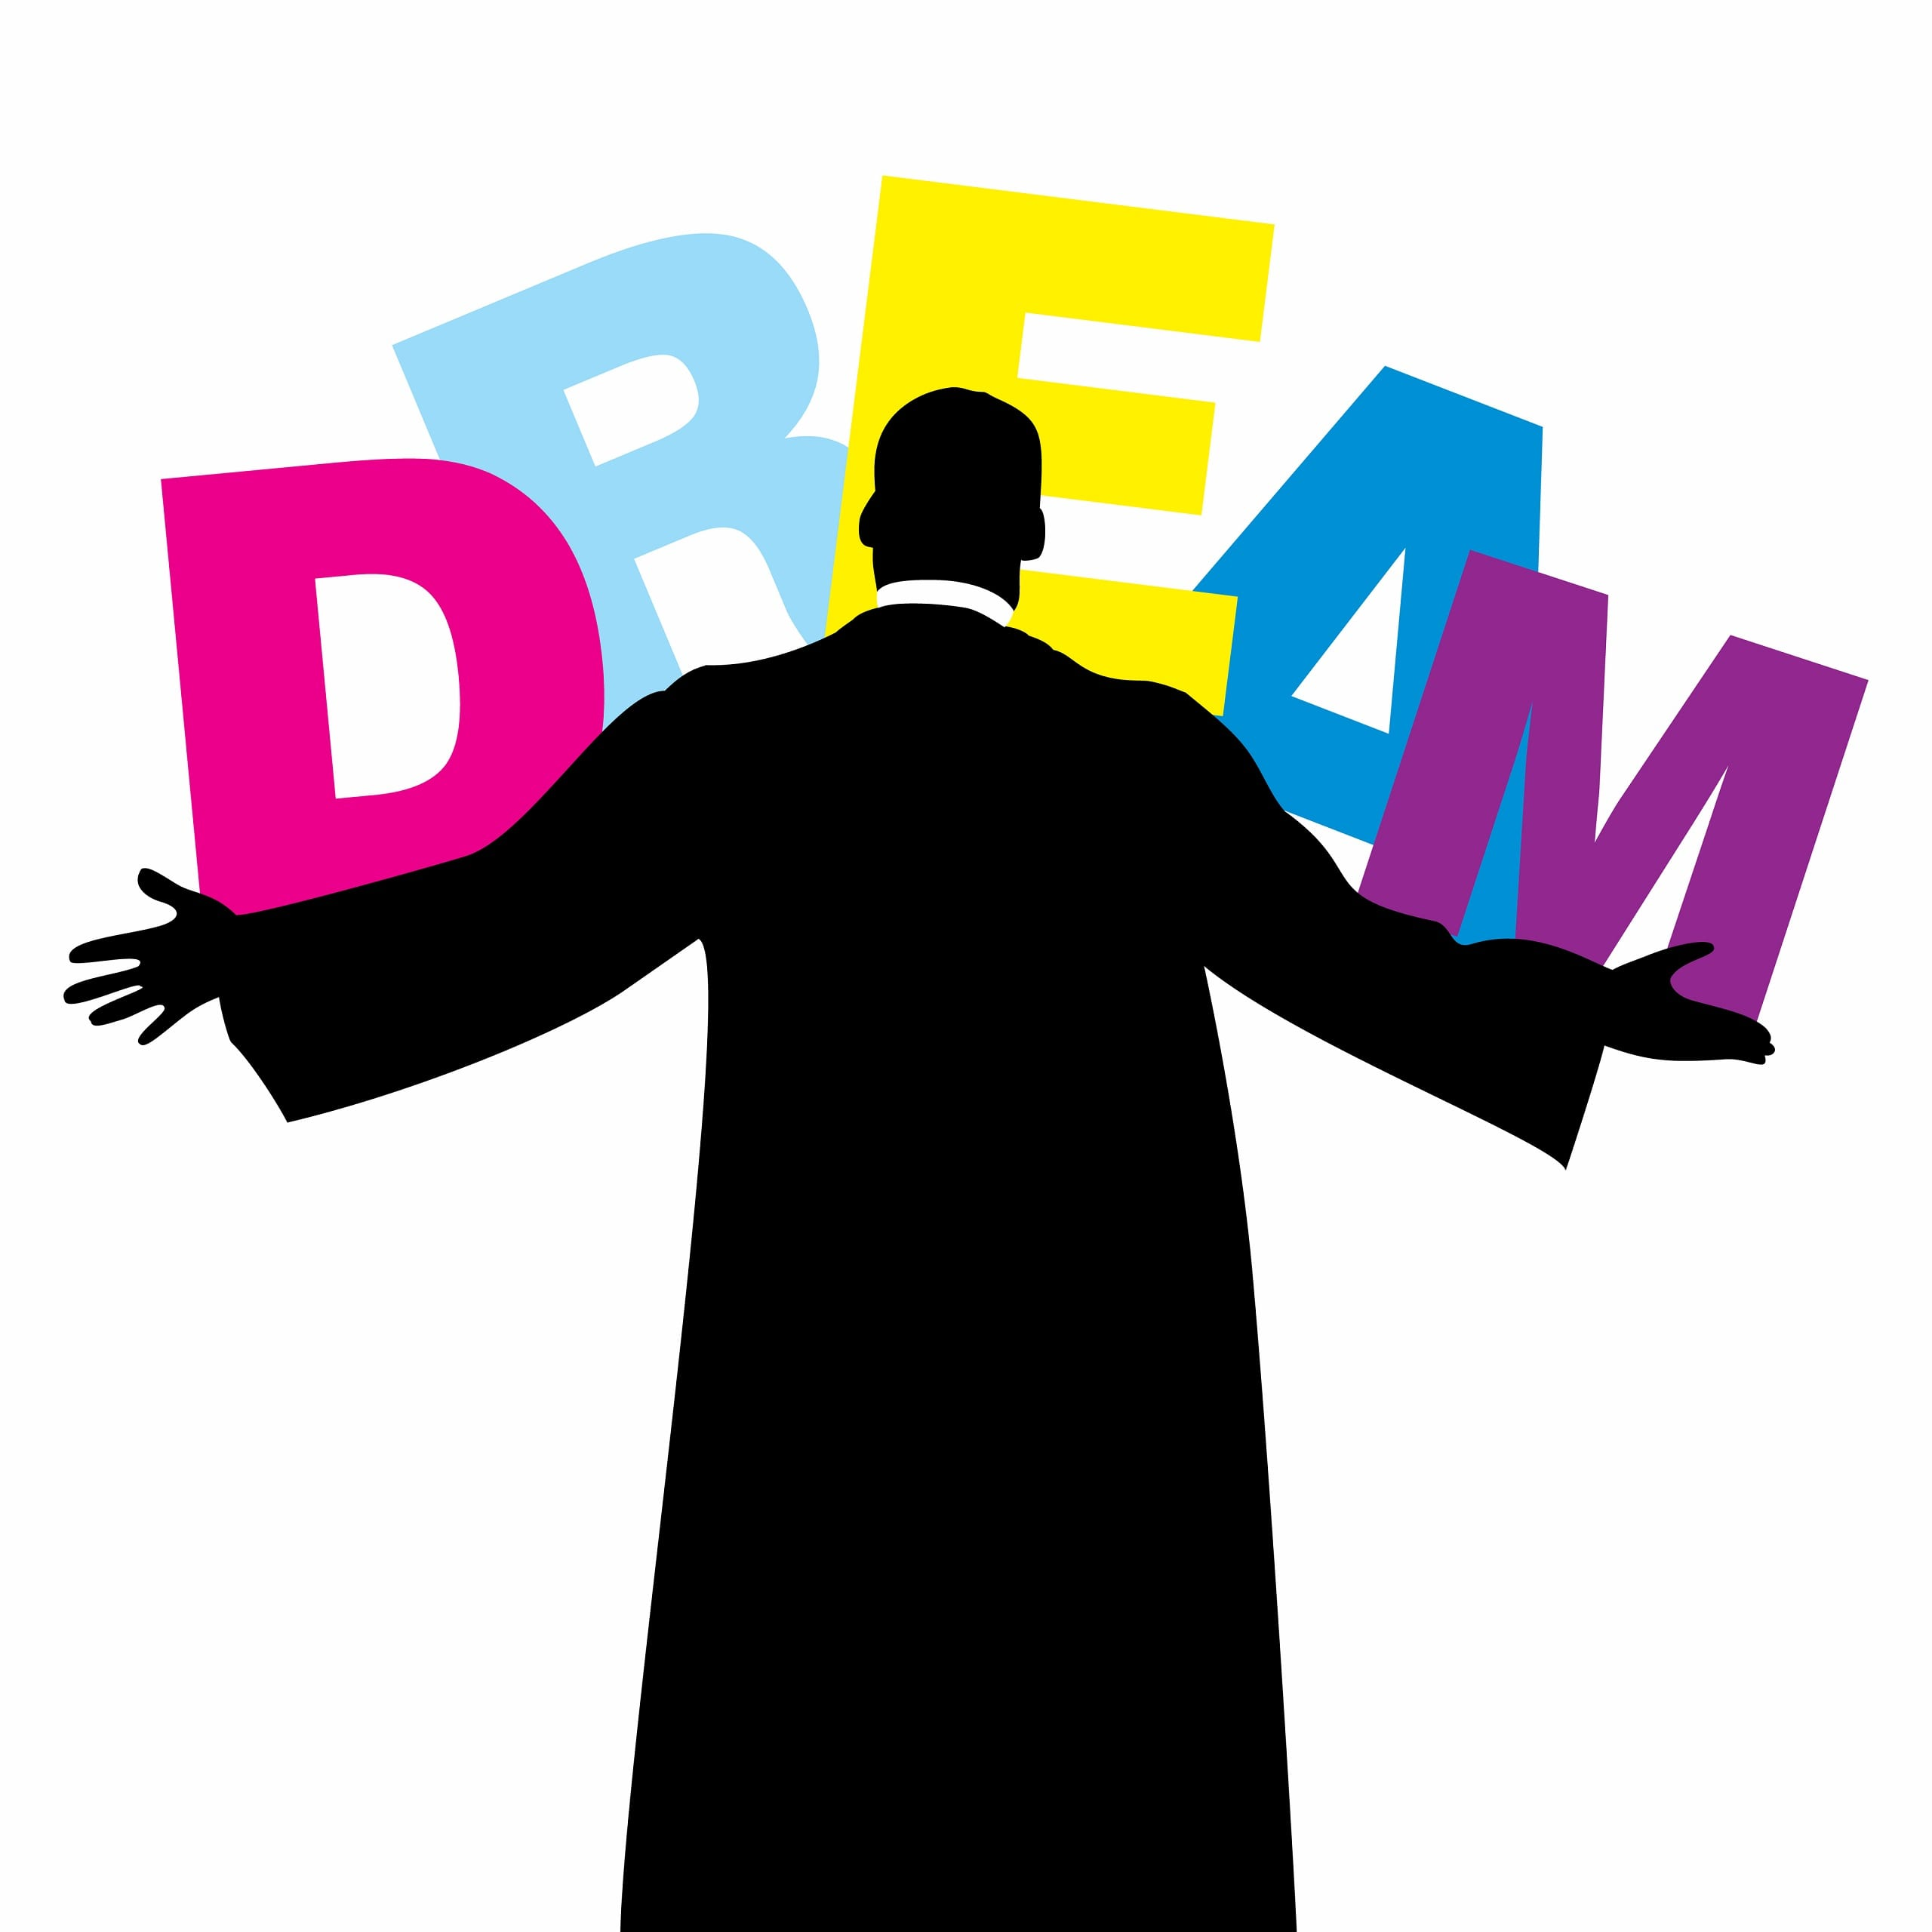 Black silhouette of a man with outstretched arms holding huge letters of the word Dream